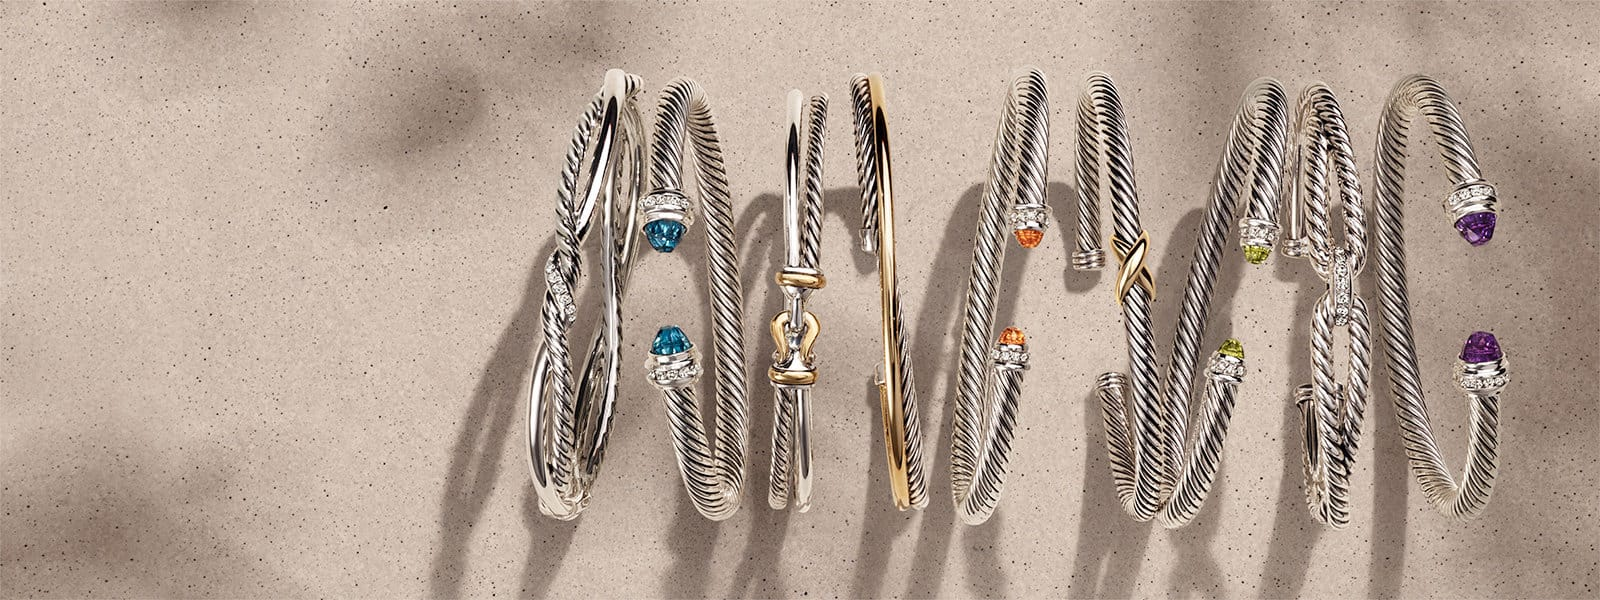 A horizontal stack of nine David Yurman Continuance, The Cable Collection®, X Collection and the Cable Loop bracelets in sterling silver with or without diamonds, 14K yellow gold or colored gemstones on a beige textured stone with long shadows.